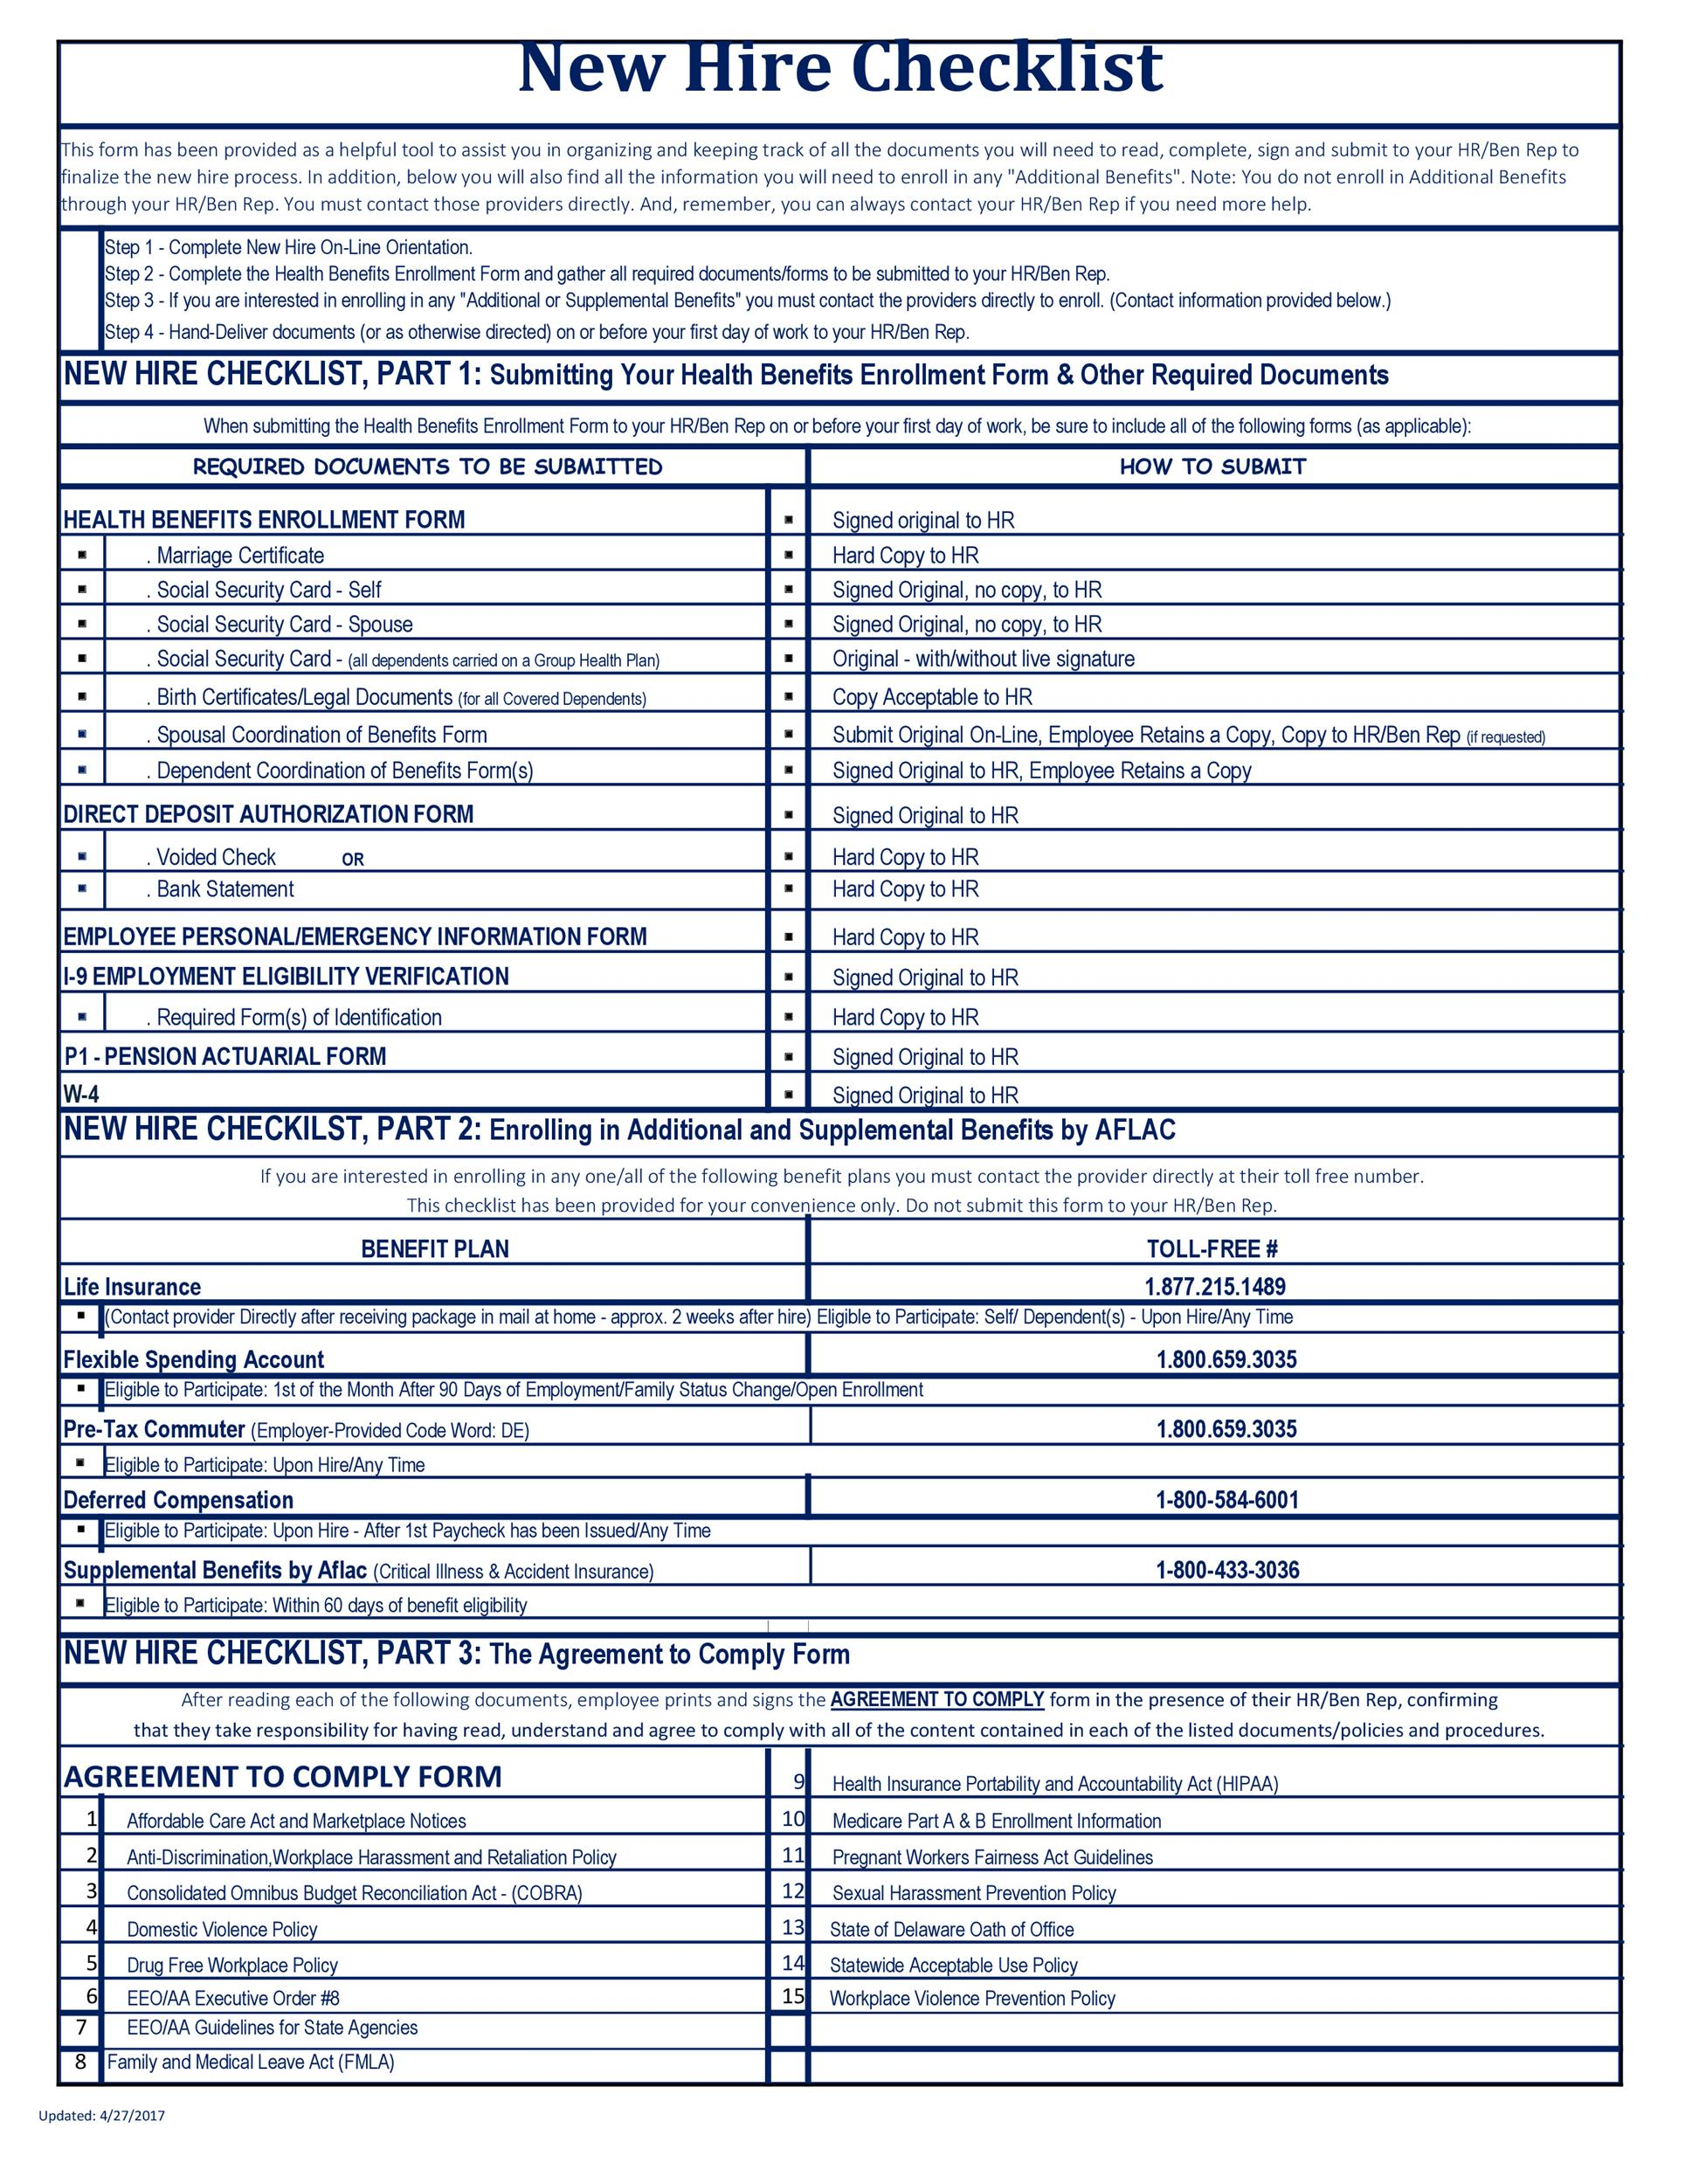 Free new hire checklist 21